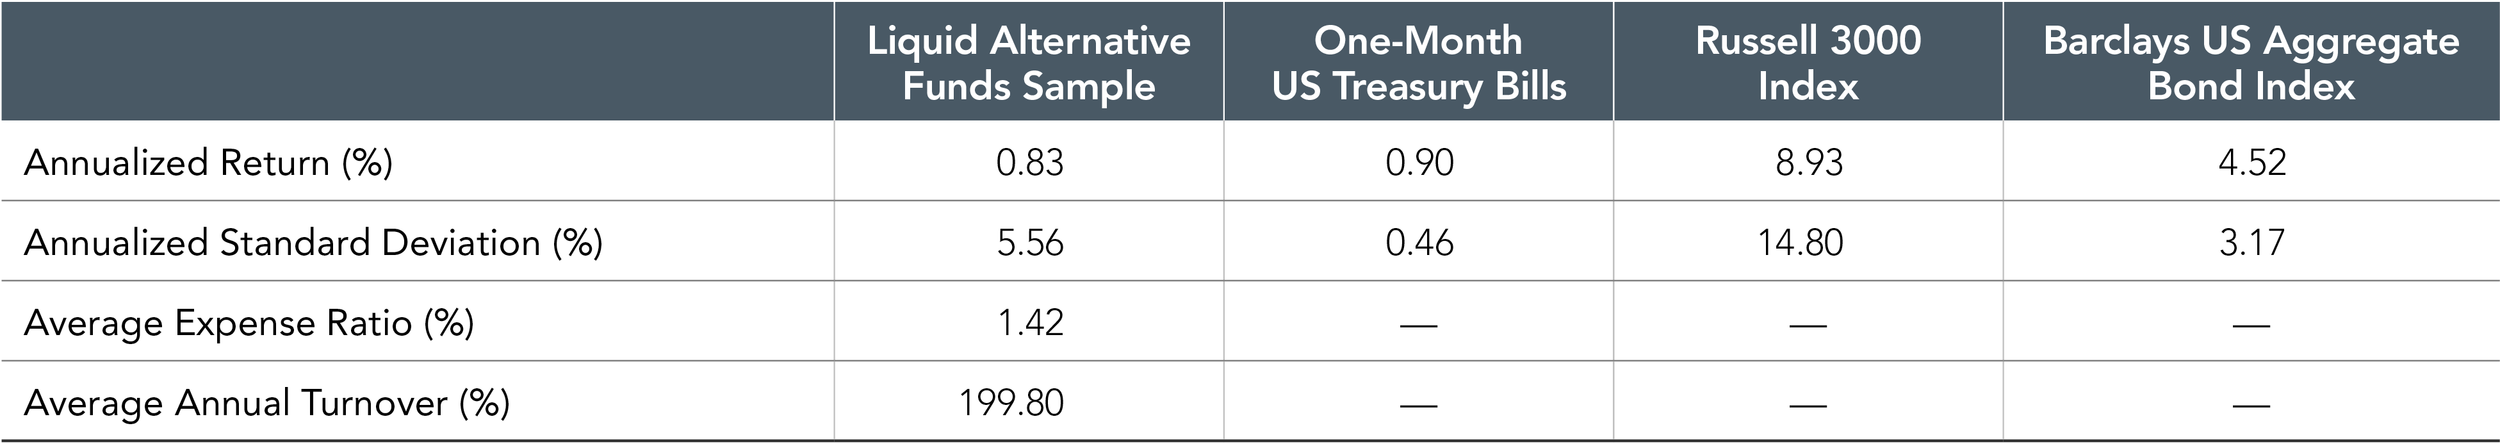 Exhibit 2. Performance and Characteristics of Liquid Alternative Funds in the U.S. vs. Traditional Stock and Bond Indices, June 2006-December 2017     Past performance is no guarantee of future results. Results could vary for different time periods and if the liquid alternative fund universe, calculated by Dimensional using CRSP data, differed. This is for illustrative purposes only and doesn't represent any specific investment product or account. Indices cannot be invested into directly and do not reflect fees and expenses associated with an actual investment. The fund returns included in the liquid alternative funds average are net of expenses. Please see a fund's annual report and prospectus for additional information on a specific portfolio's turnover and the expenses it incurs.    Liquid Alternative Funds Sample includes absolute return, long/short equity, managed futures, and market neutral equity mutual funds from the CRSP Mutual Fund Database after they have reached $50 million in AUM and have at least 36 months of return history. Dimensional calculated annualized return, annualized standard deviation, expense ratio, and annual turnover as an asset-weighted average of the Liquid Alternative Funds Sample. It is not possible to invest directly in an index. Past performance is not a guarantee of future results. Source of one-month US Treasury bills: © 2018 Morningstar. Former source of one-month US Treasury bills: Stocks, Bonds, Bills, and Inflation, Chicago: Ibbotson And Sinquefield, 1986. Barclays indices © Barclays 2018. Russell data © Russell Investment Group 1995–2018, all rights reserved.    Standard deviation is a measure of the variation or dispersion of a set of data points. Standard deviations are often used to quantify the historical return volatility of a security or a portfolio. Turnover measures the portion of securities in a portfolio that are bought and sold over a period of time.